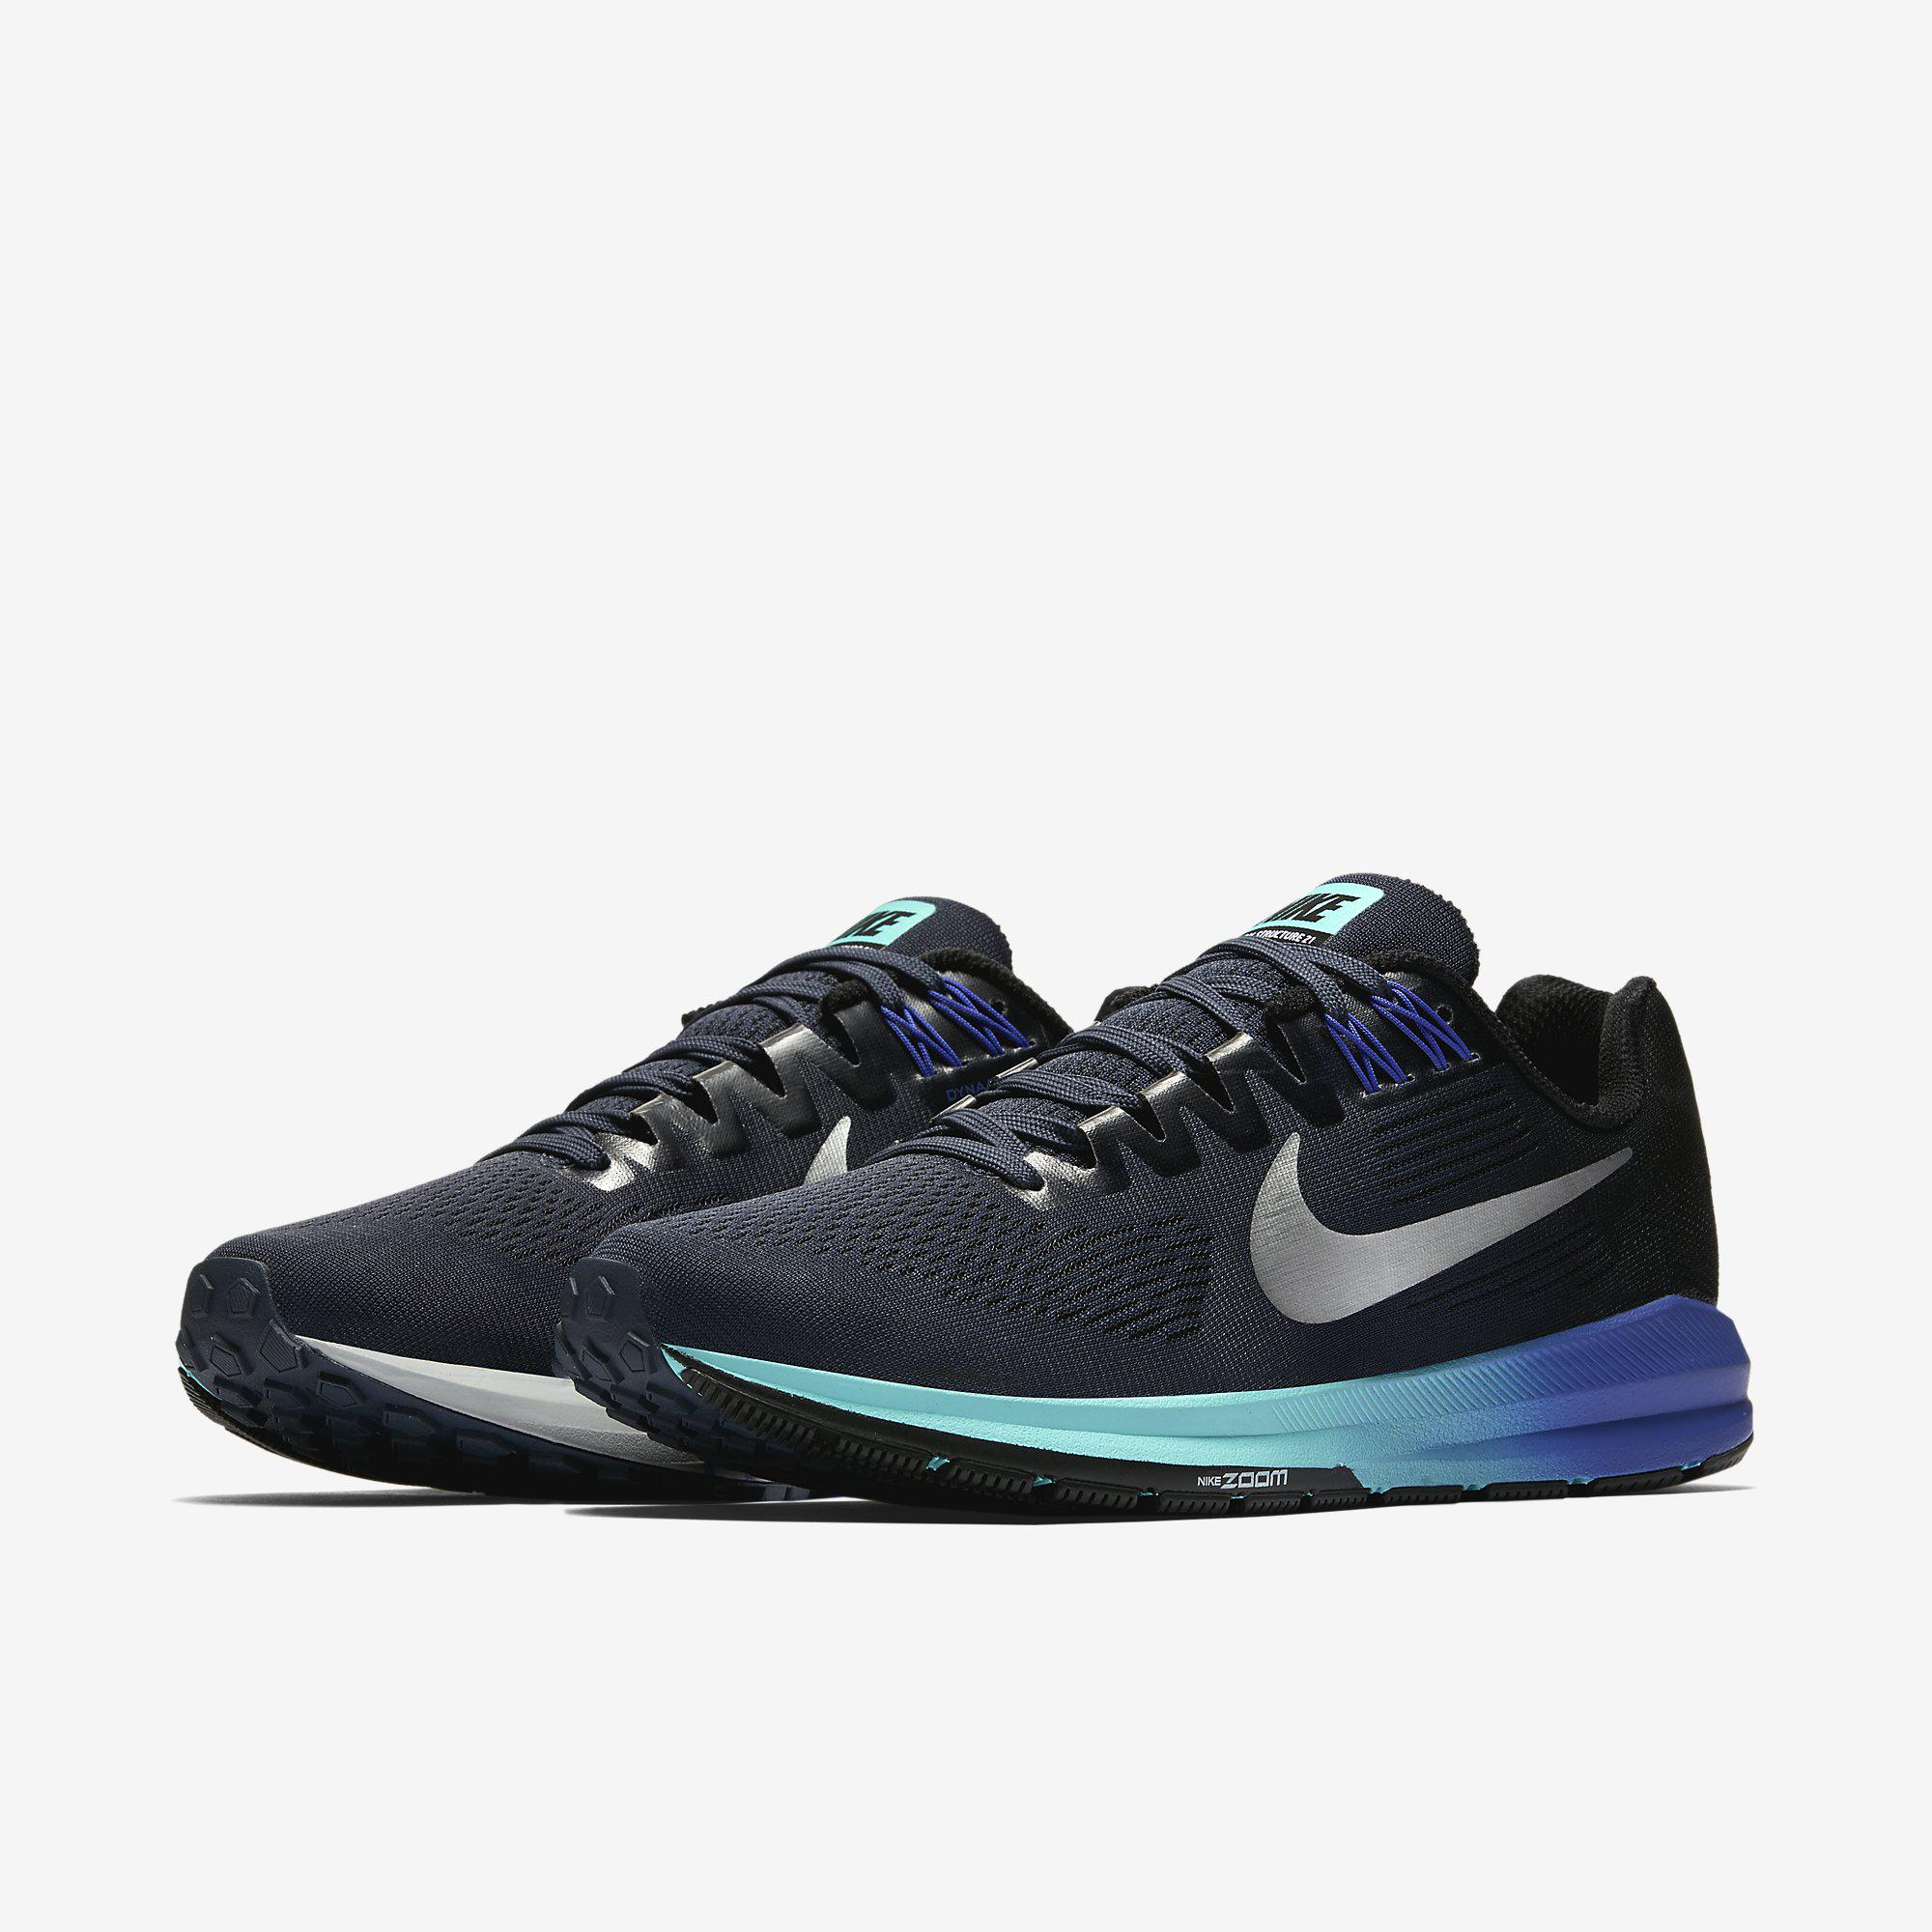 3bcb8508ac9 Nike Womens Zoom Structure 21 Running Shoes - Blue Silver Black ...